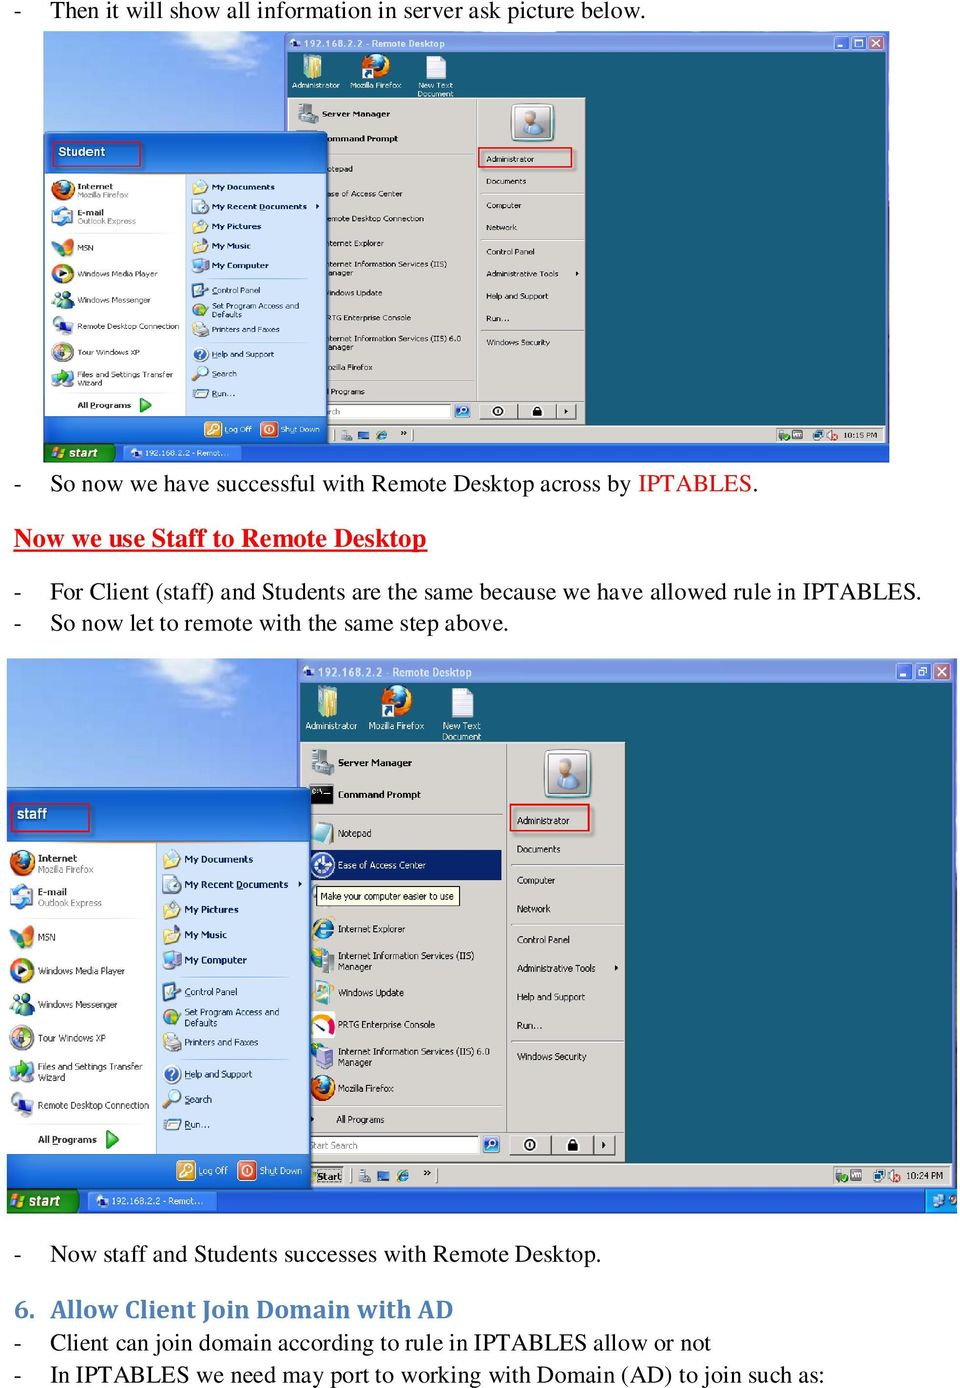 - So now let to remote with the same step above. - Now staff and Students successes with Remote Desktop. 6.